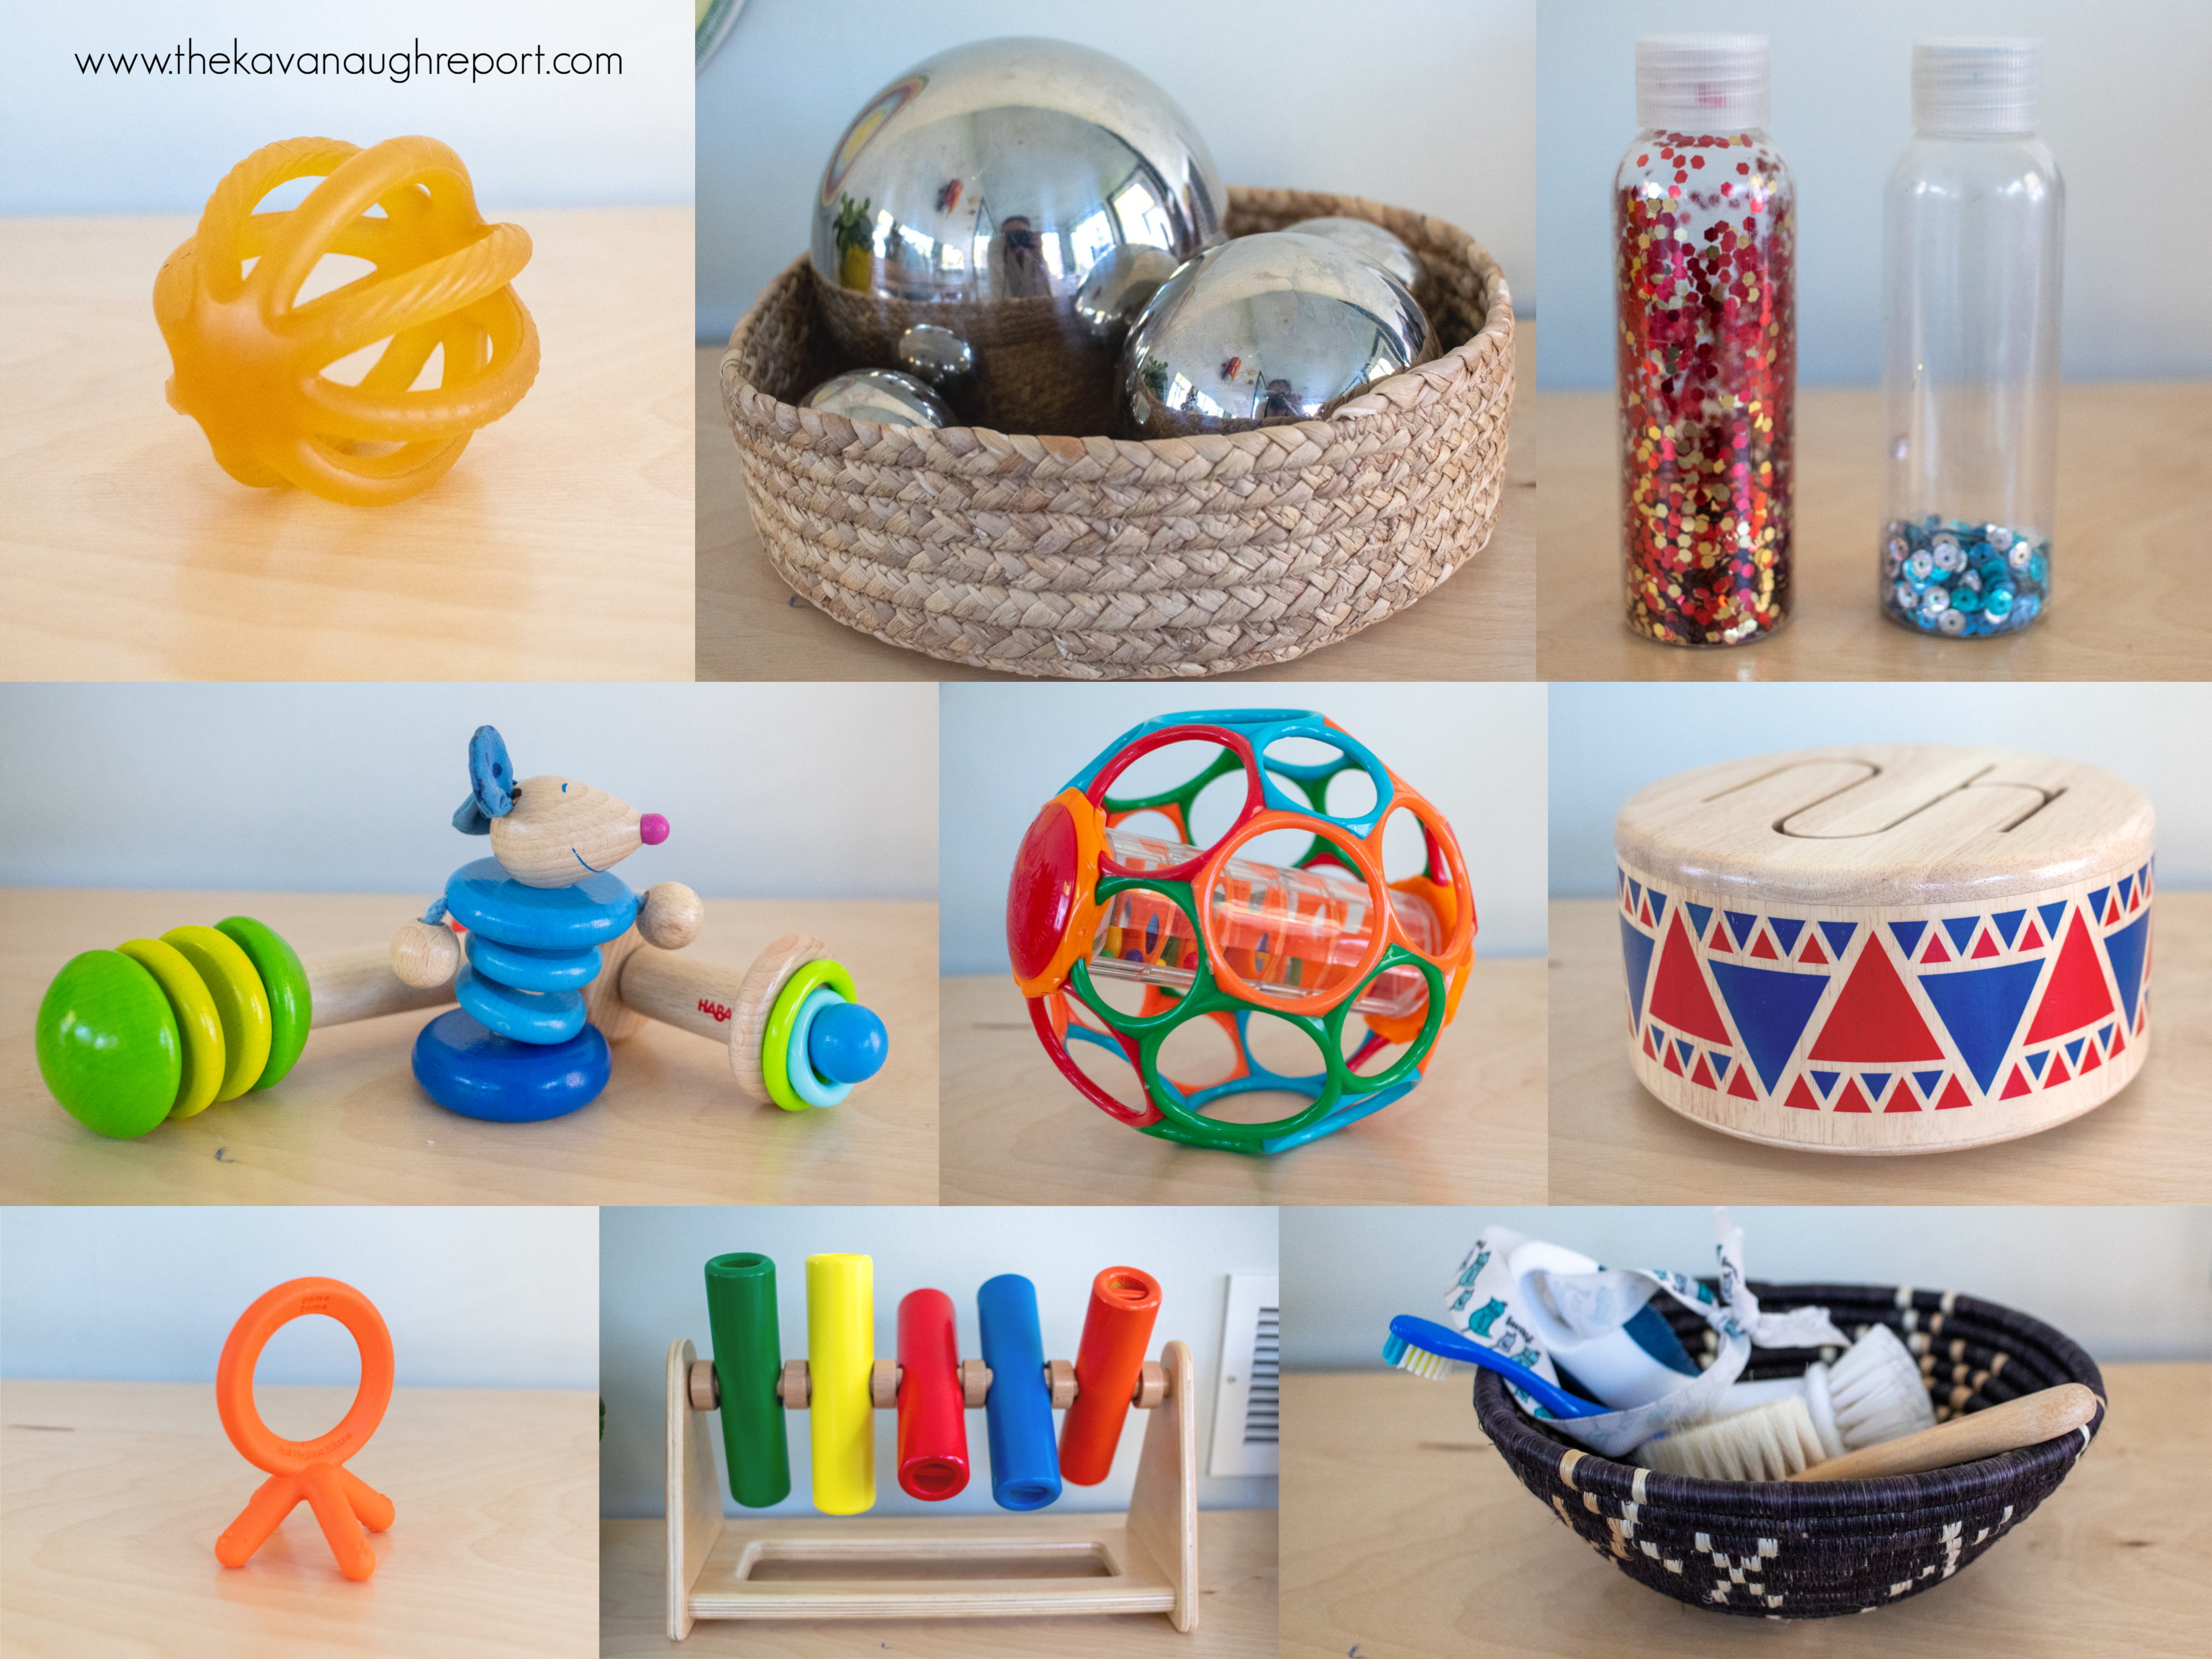 Montessori baby toys for 7 month olds. These activities are fun and engaging for babies.